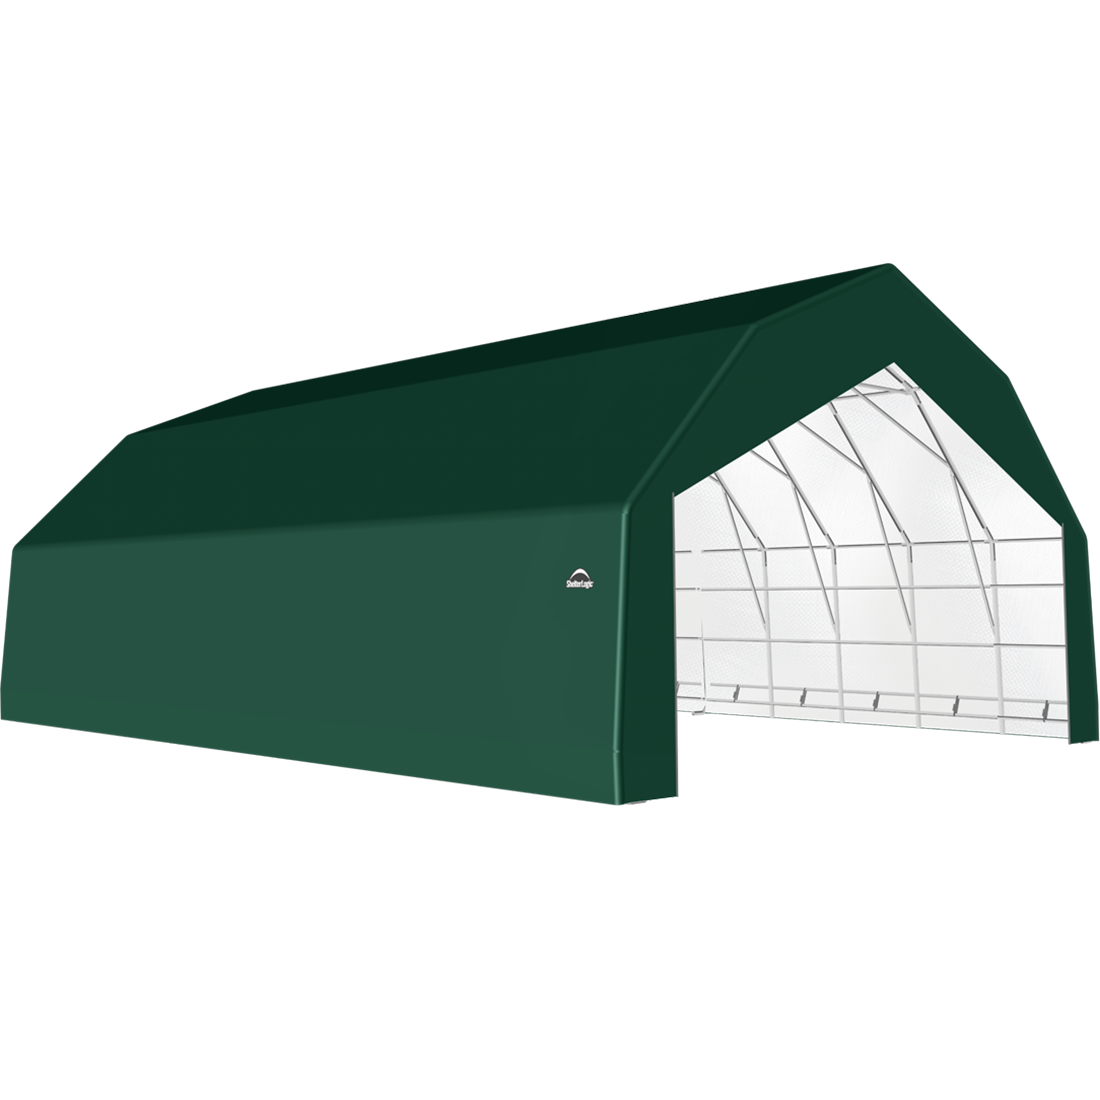 SP Barn 30X44X18 Green 14 oz PE Shelter